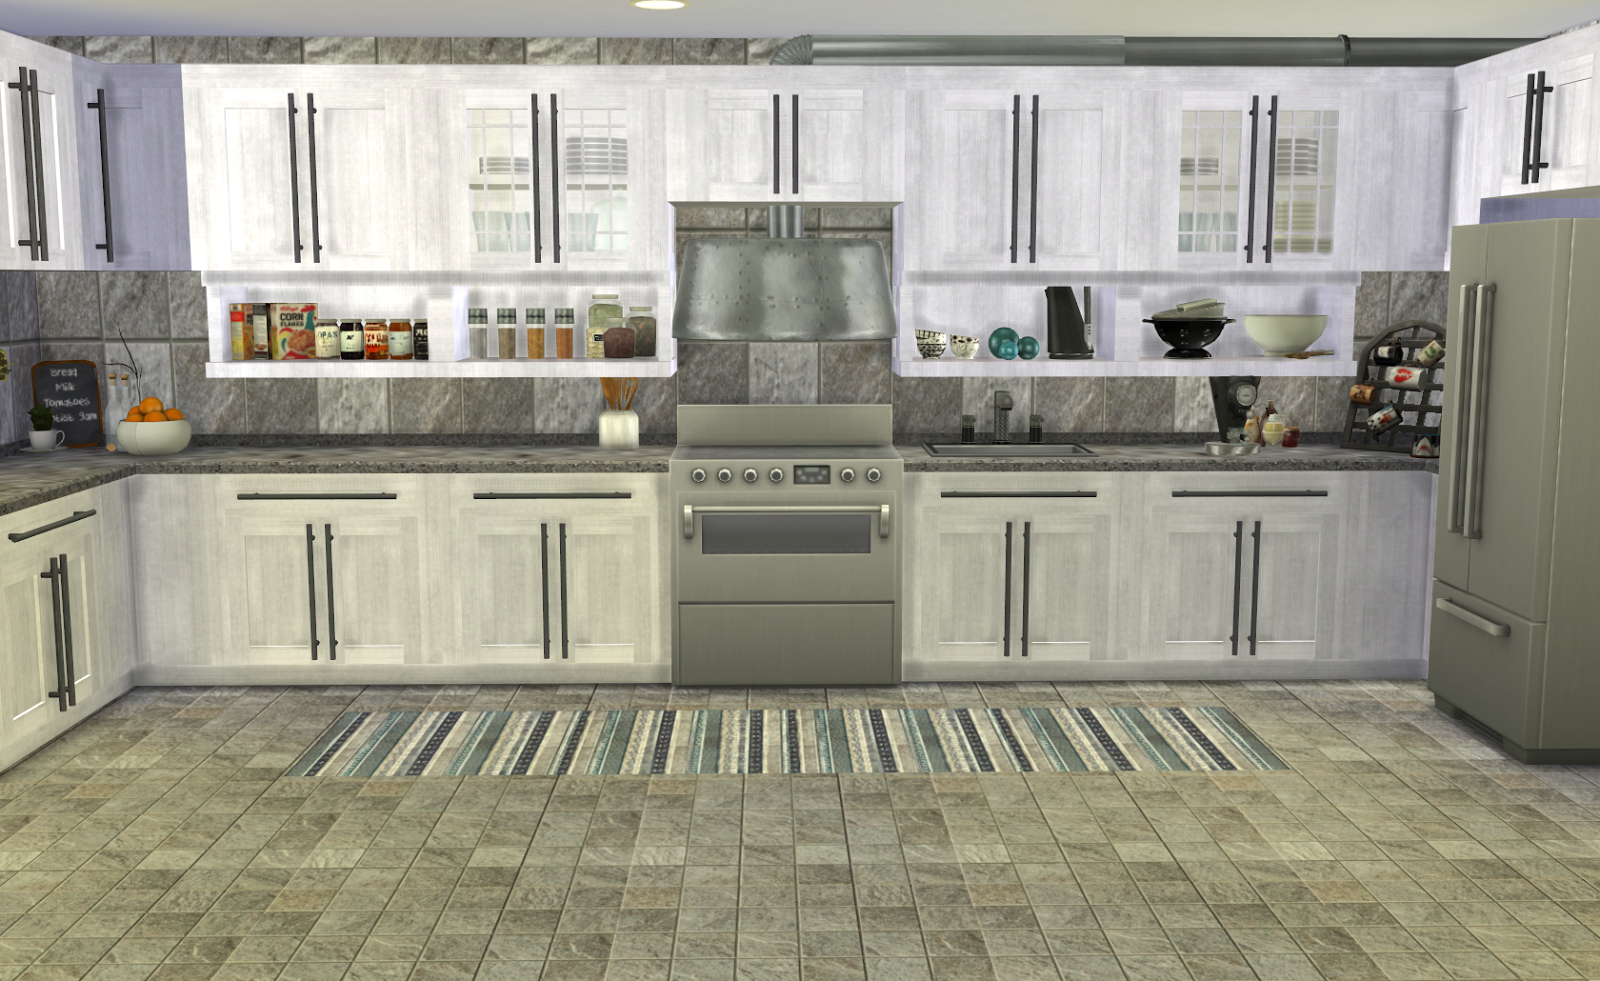 Sims 3 Kitchen My Little The Sims 3 World Bayside Kitchen Recolor Furnitures